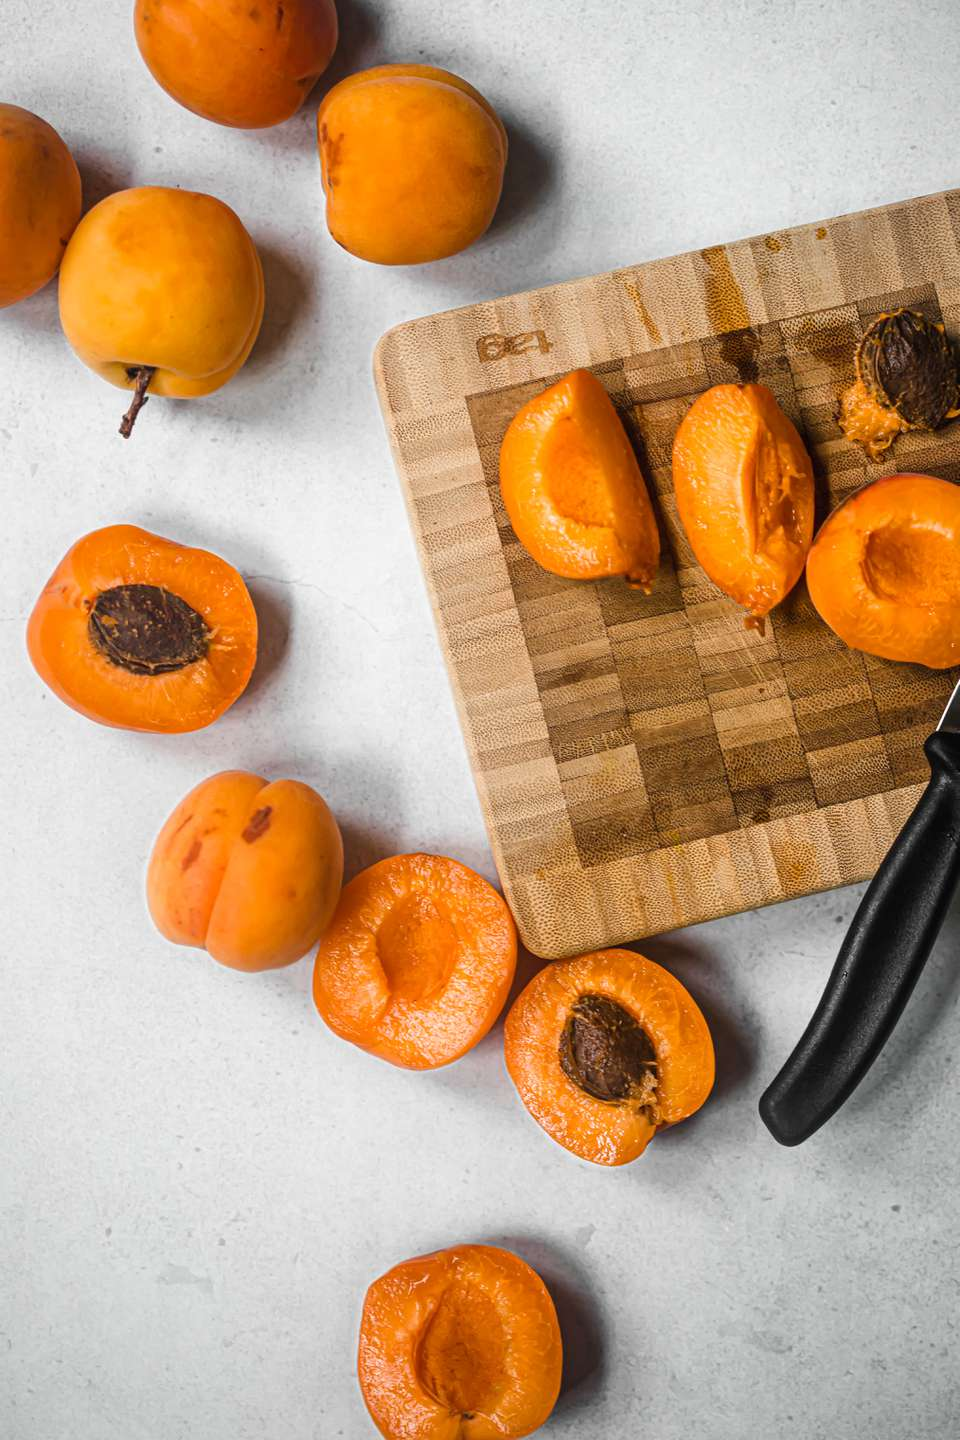 Apricots whole and sliced with a wood cutting board